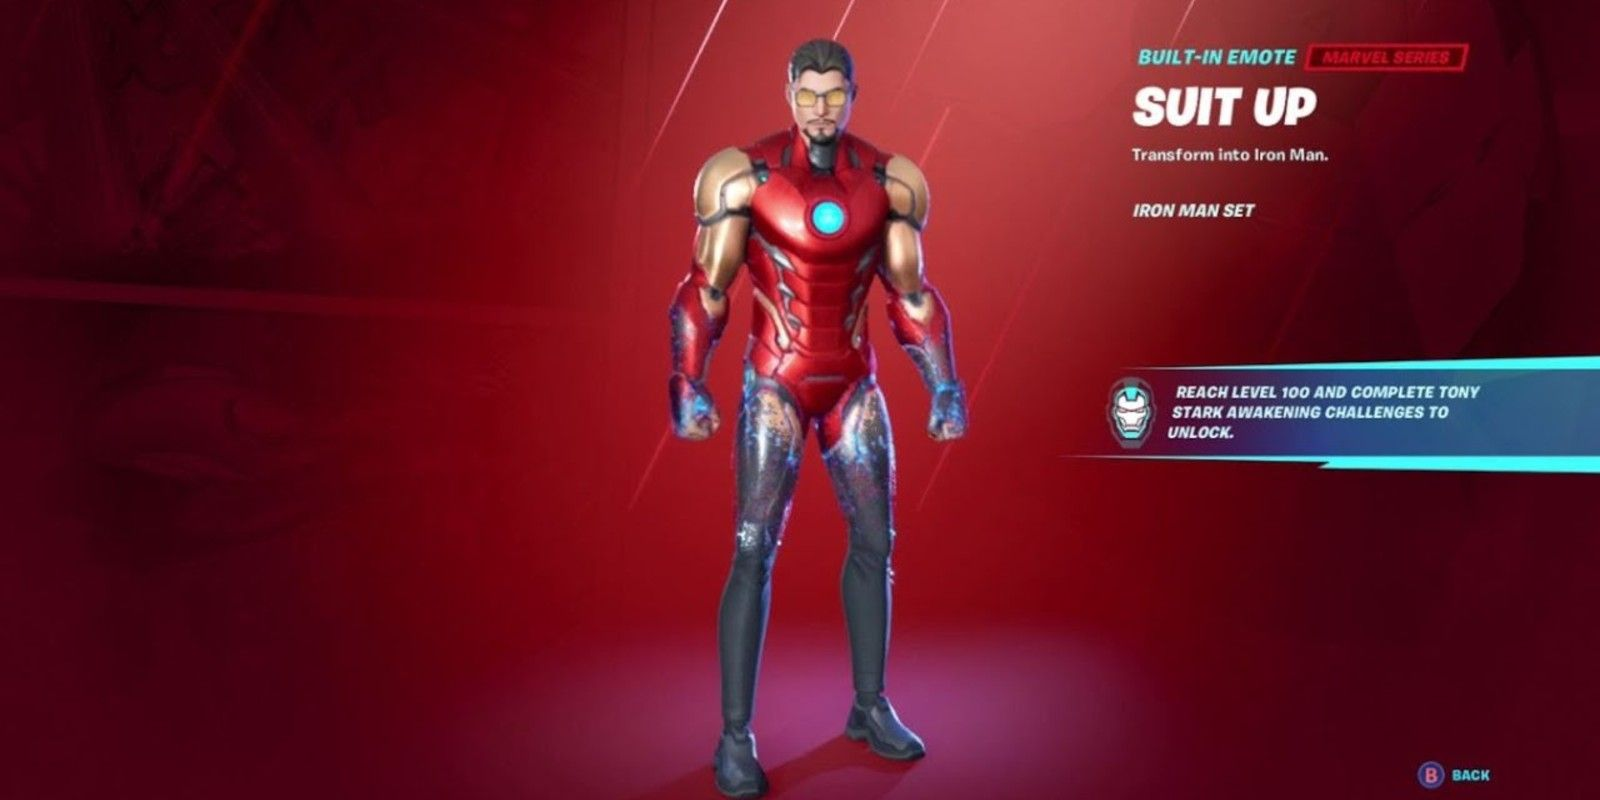 How To Unlock The Iron Man Suit Up Emote In Fortnite Where can you find iron man in fortnite? the iron man suit up emote in fortnite